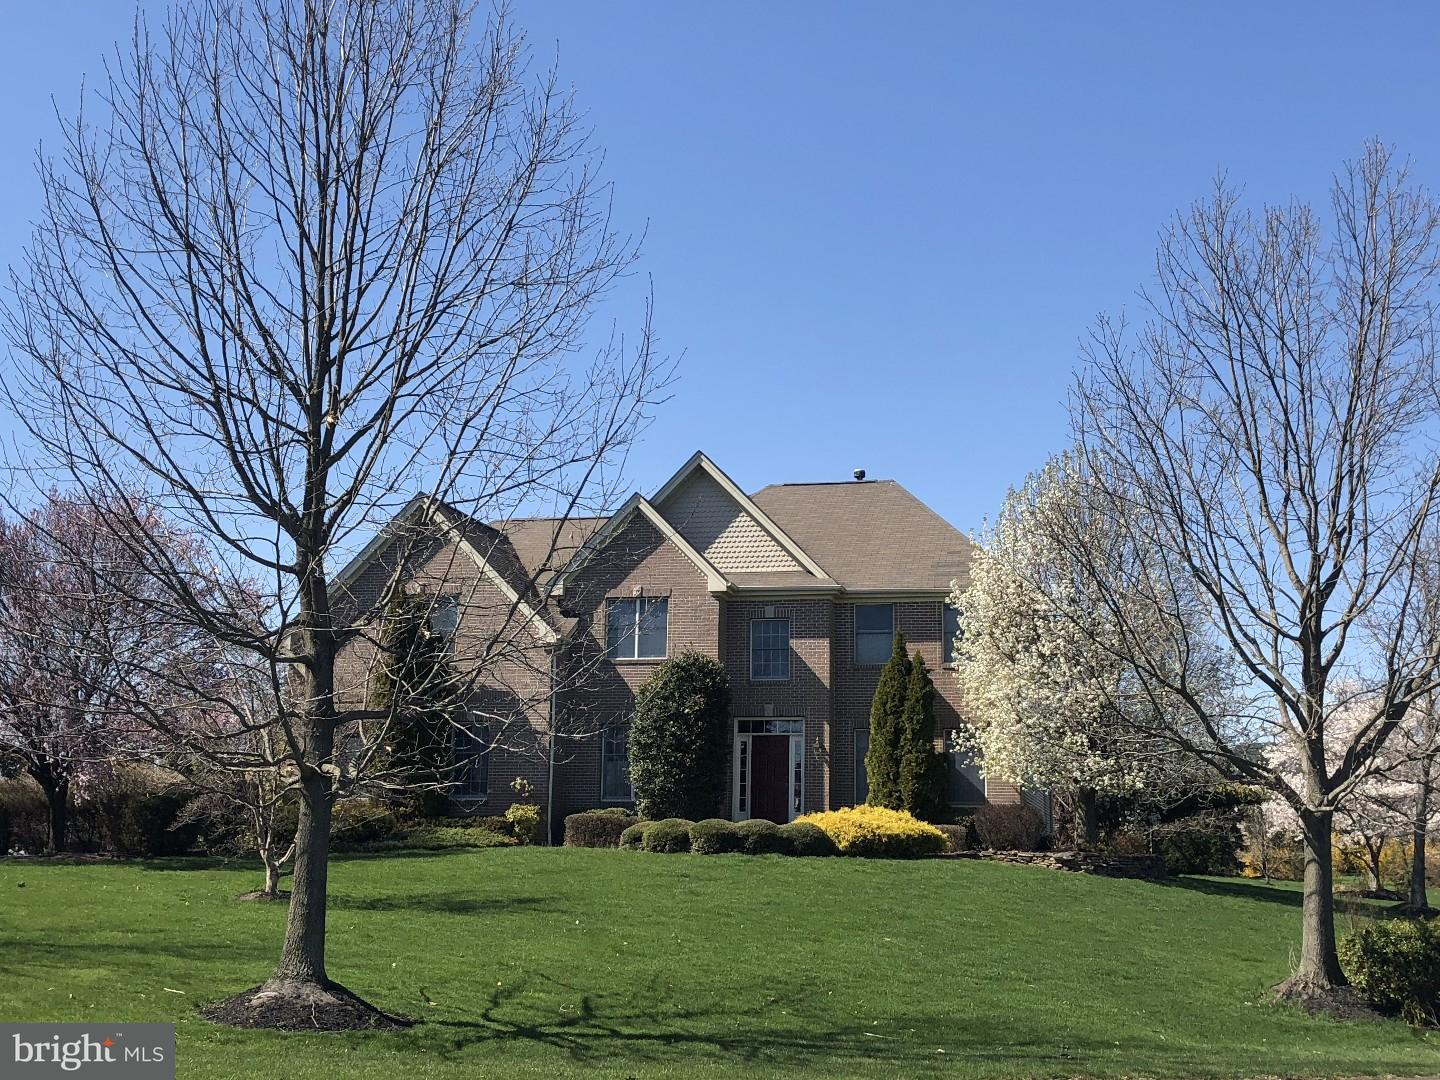 Single Family Home for Sale at 8 COLONIAL Court Plainsboro, New Jersey 08536 United StatesMunicipality: Plainsboro Township